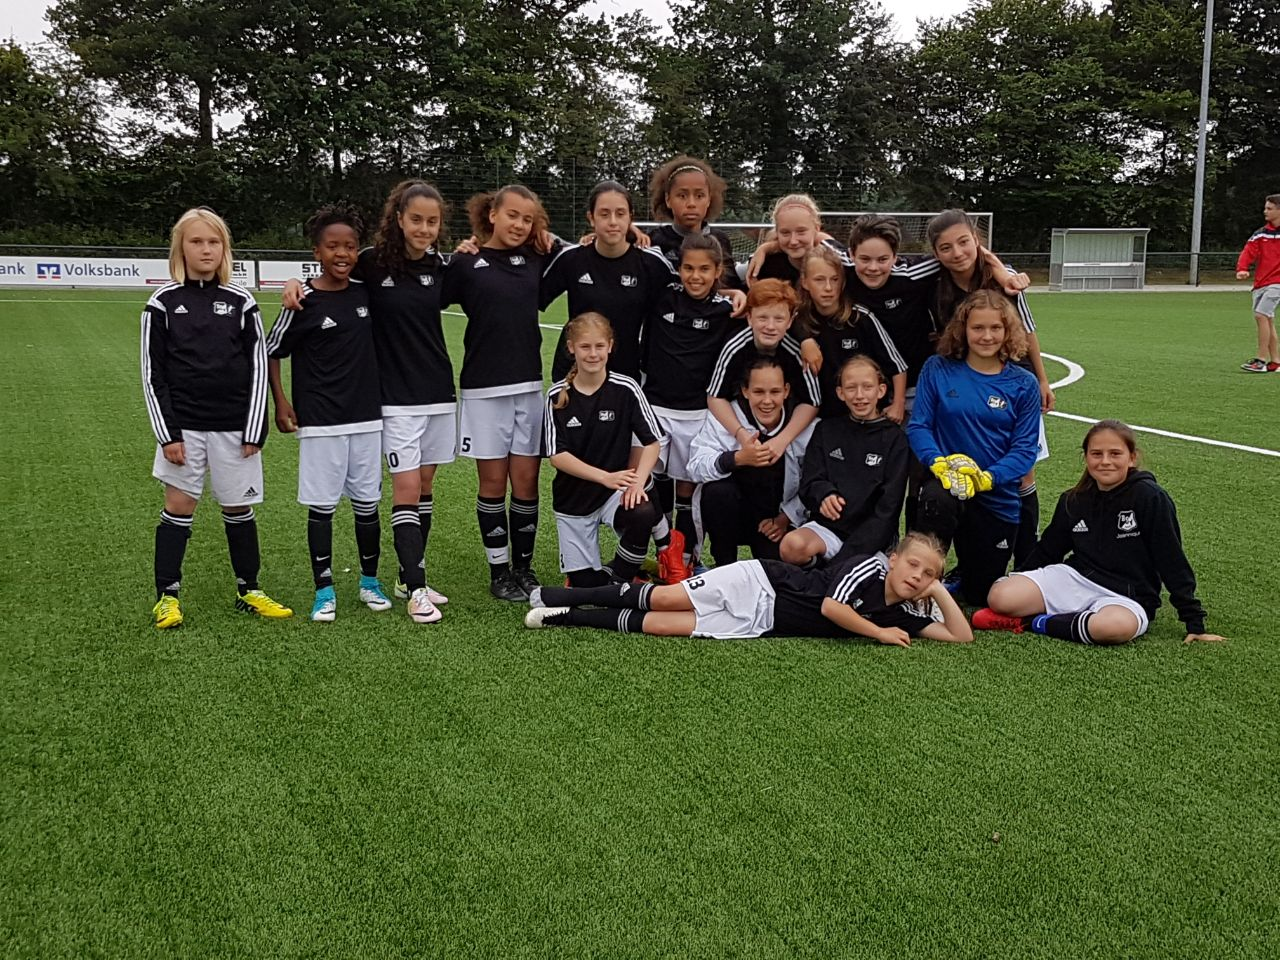 U12-Juniorinnen Internationales Turnier in Steinhagen